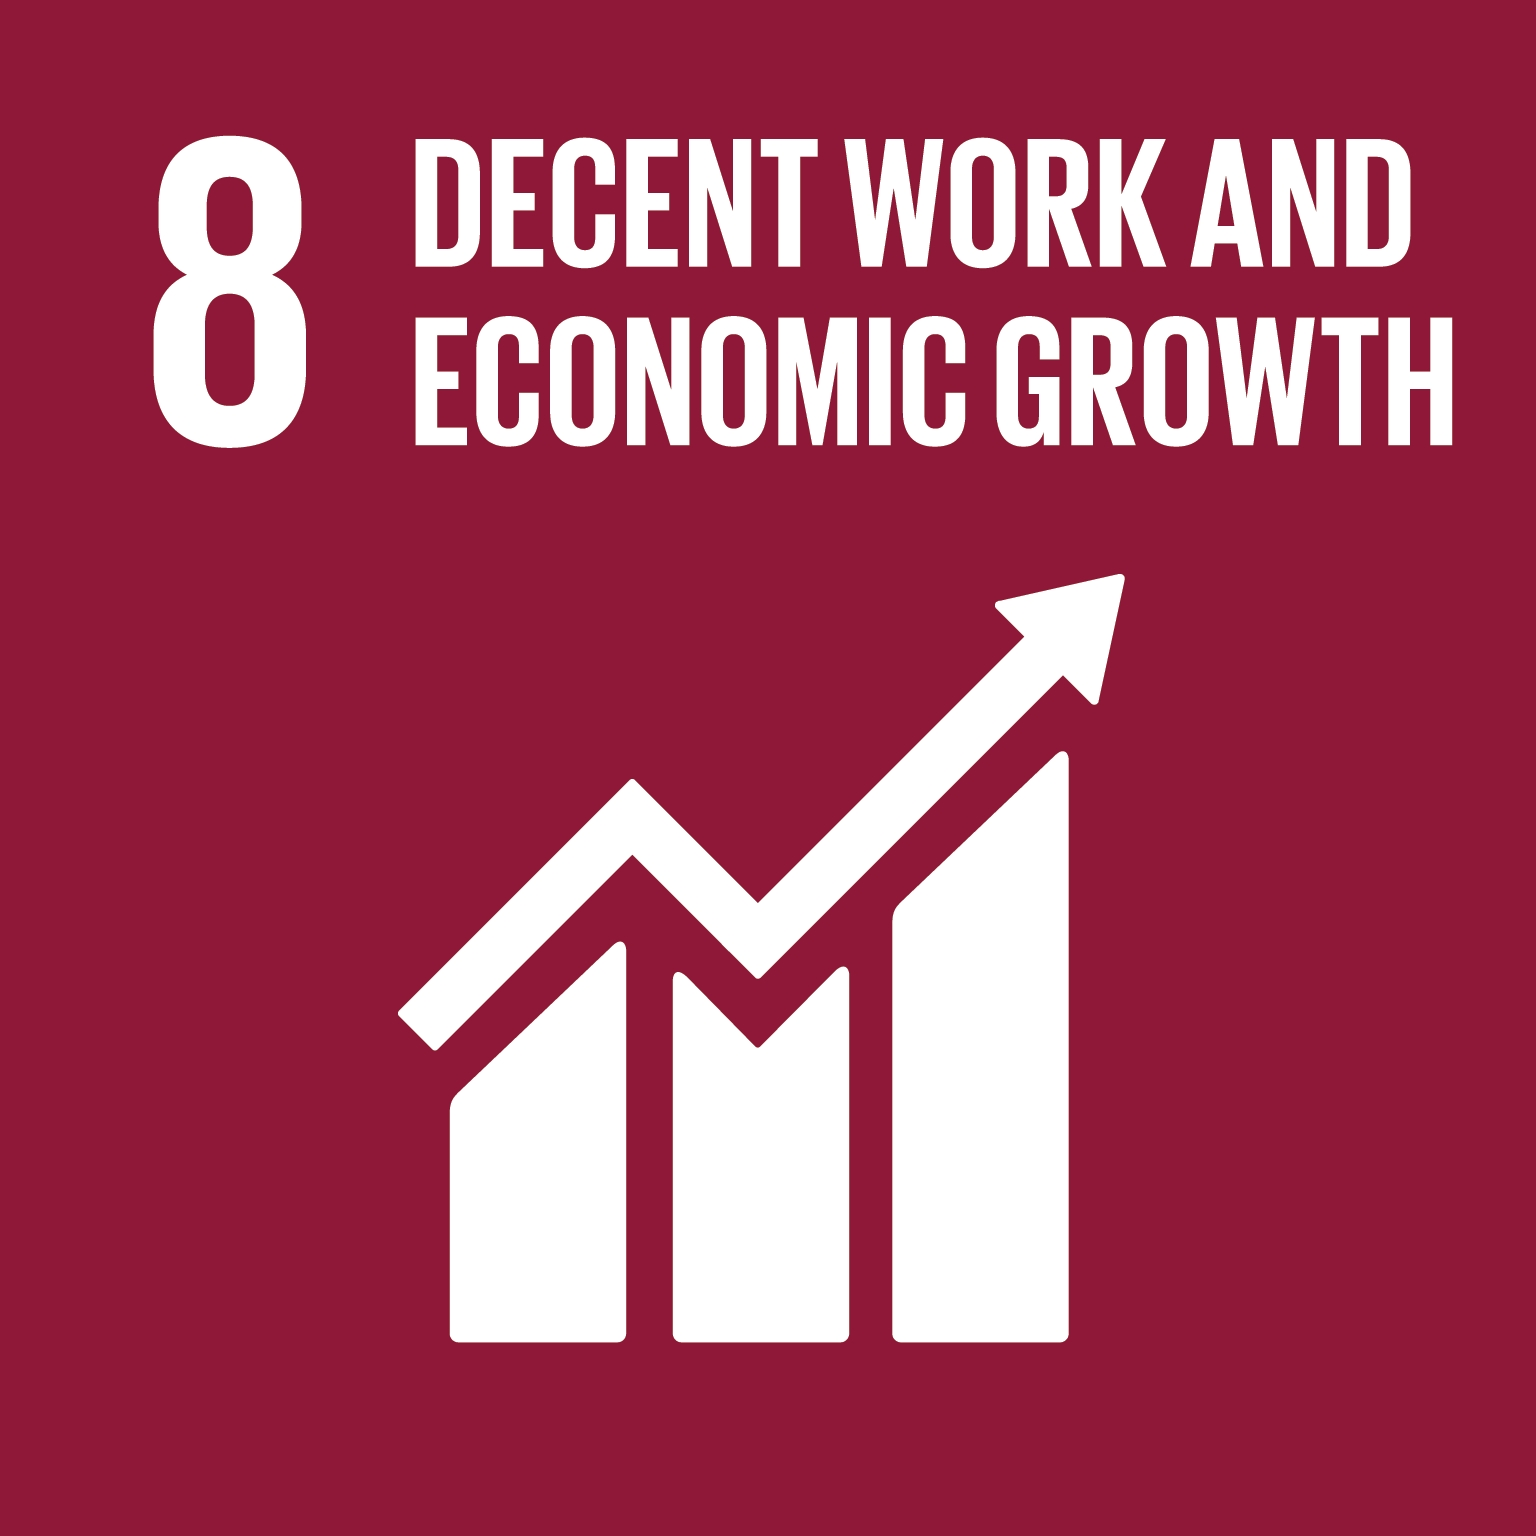 8 DECENT WORK AND ECONONMIC GROWTH